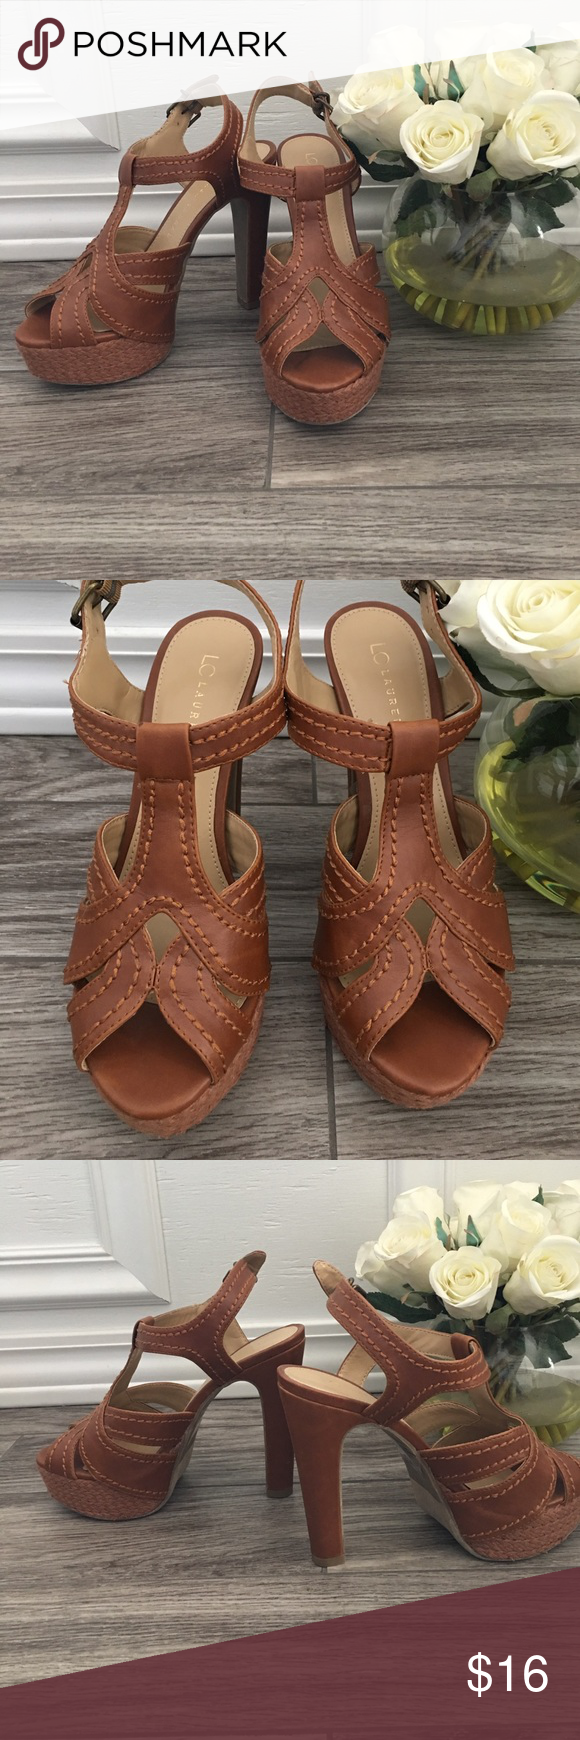 NWOT Brown stacked platform sandal Perfect for spring! These are platform Brown Lauren Conrad sandals. Adjustable back strap. 5 inch heel with a 2 inch front platform .Never worn brand new LC Lauren Conrad Shoes Sandals